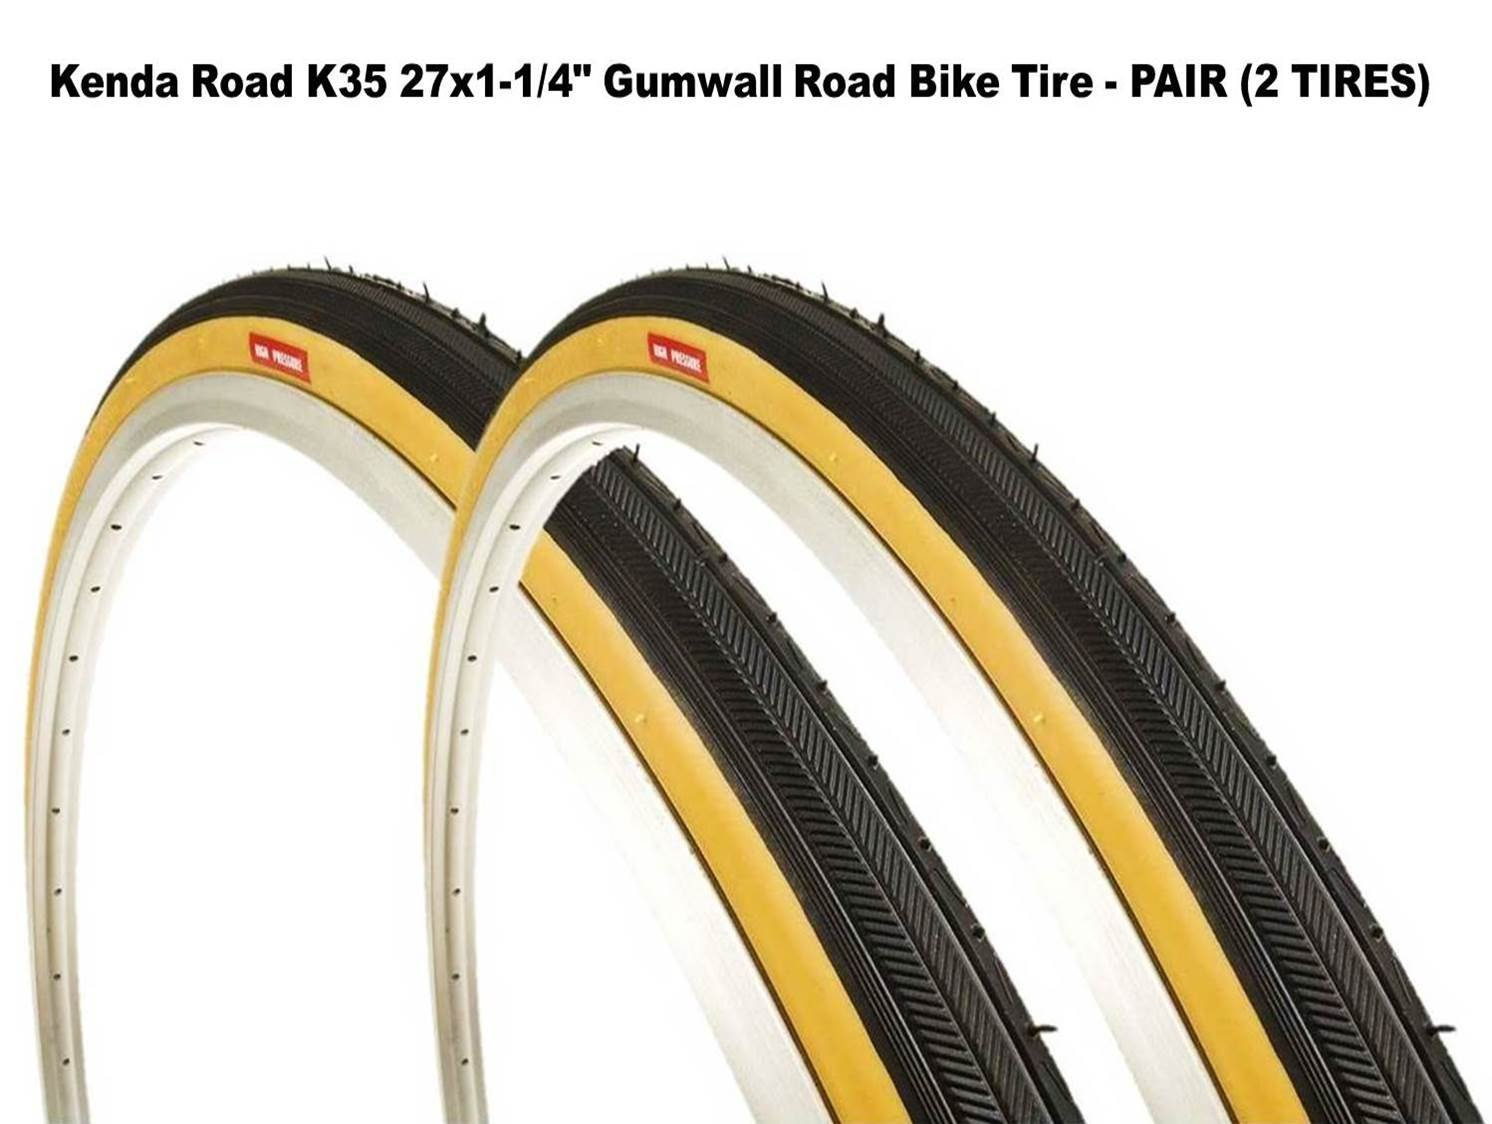 White Duro 27x1 City Classic Vintage Road Fixie Touring Bike Bicycle Tire Tires